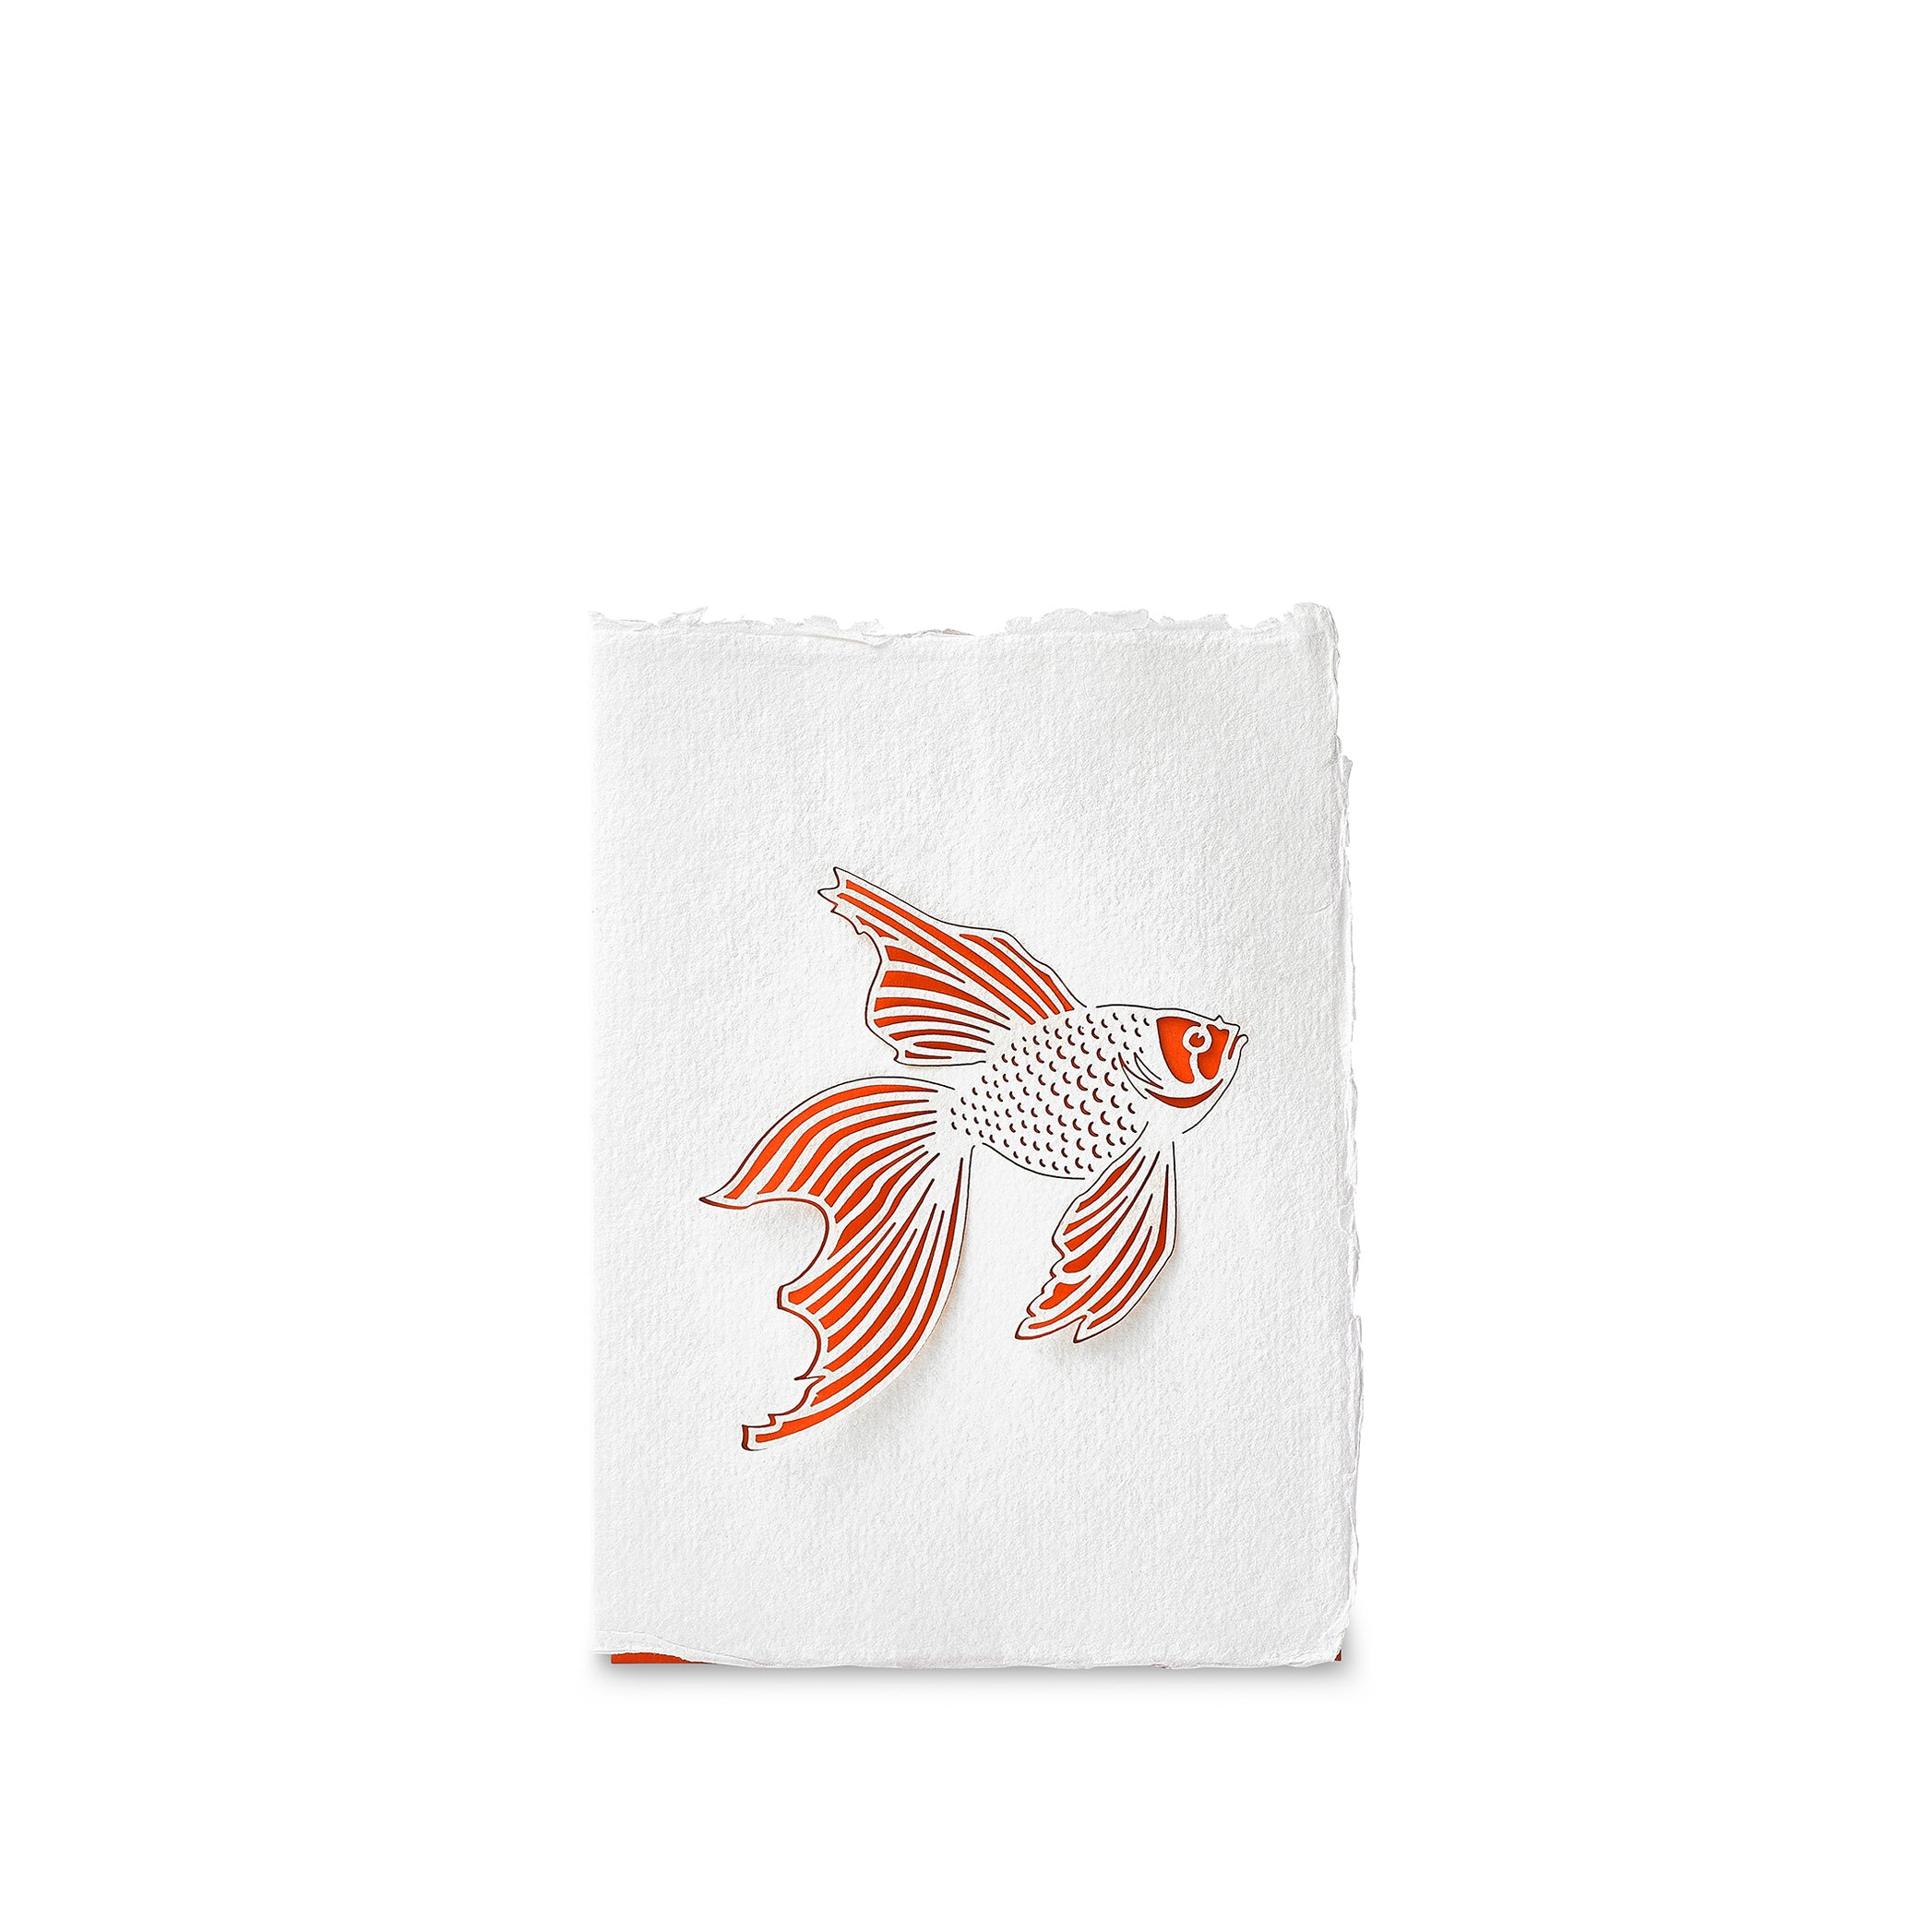 Handmade Paper Greeting Card with Fish